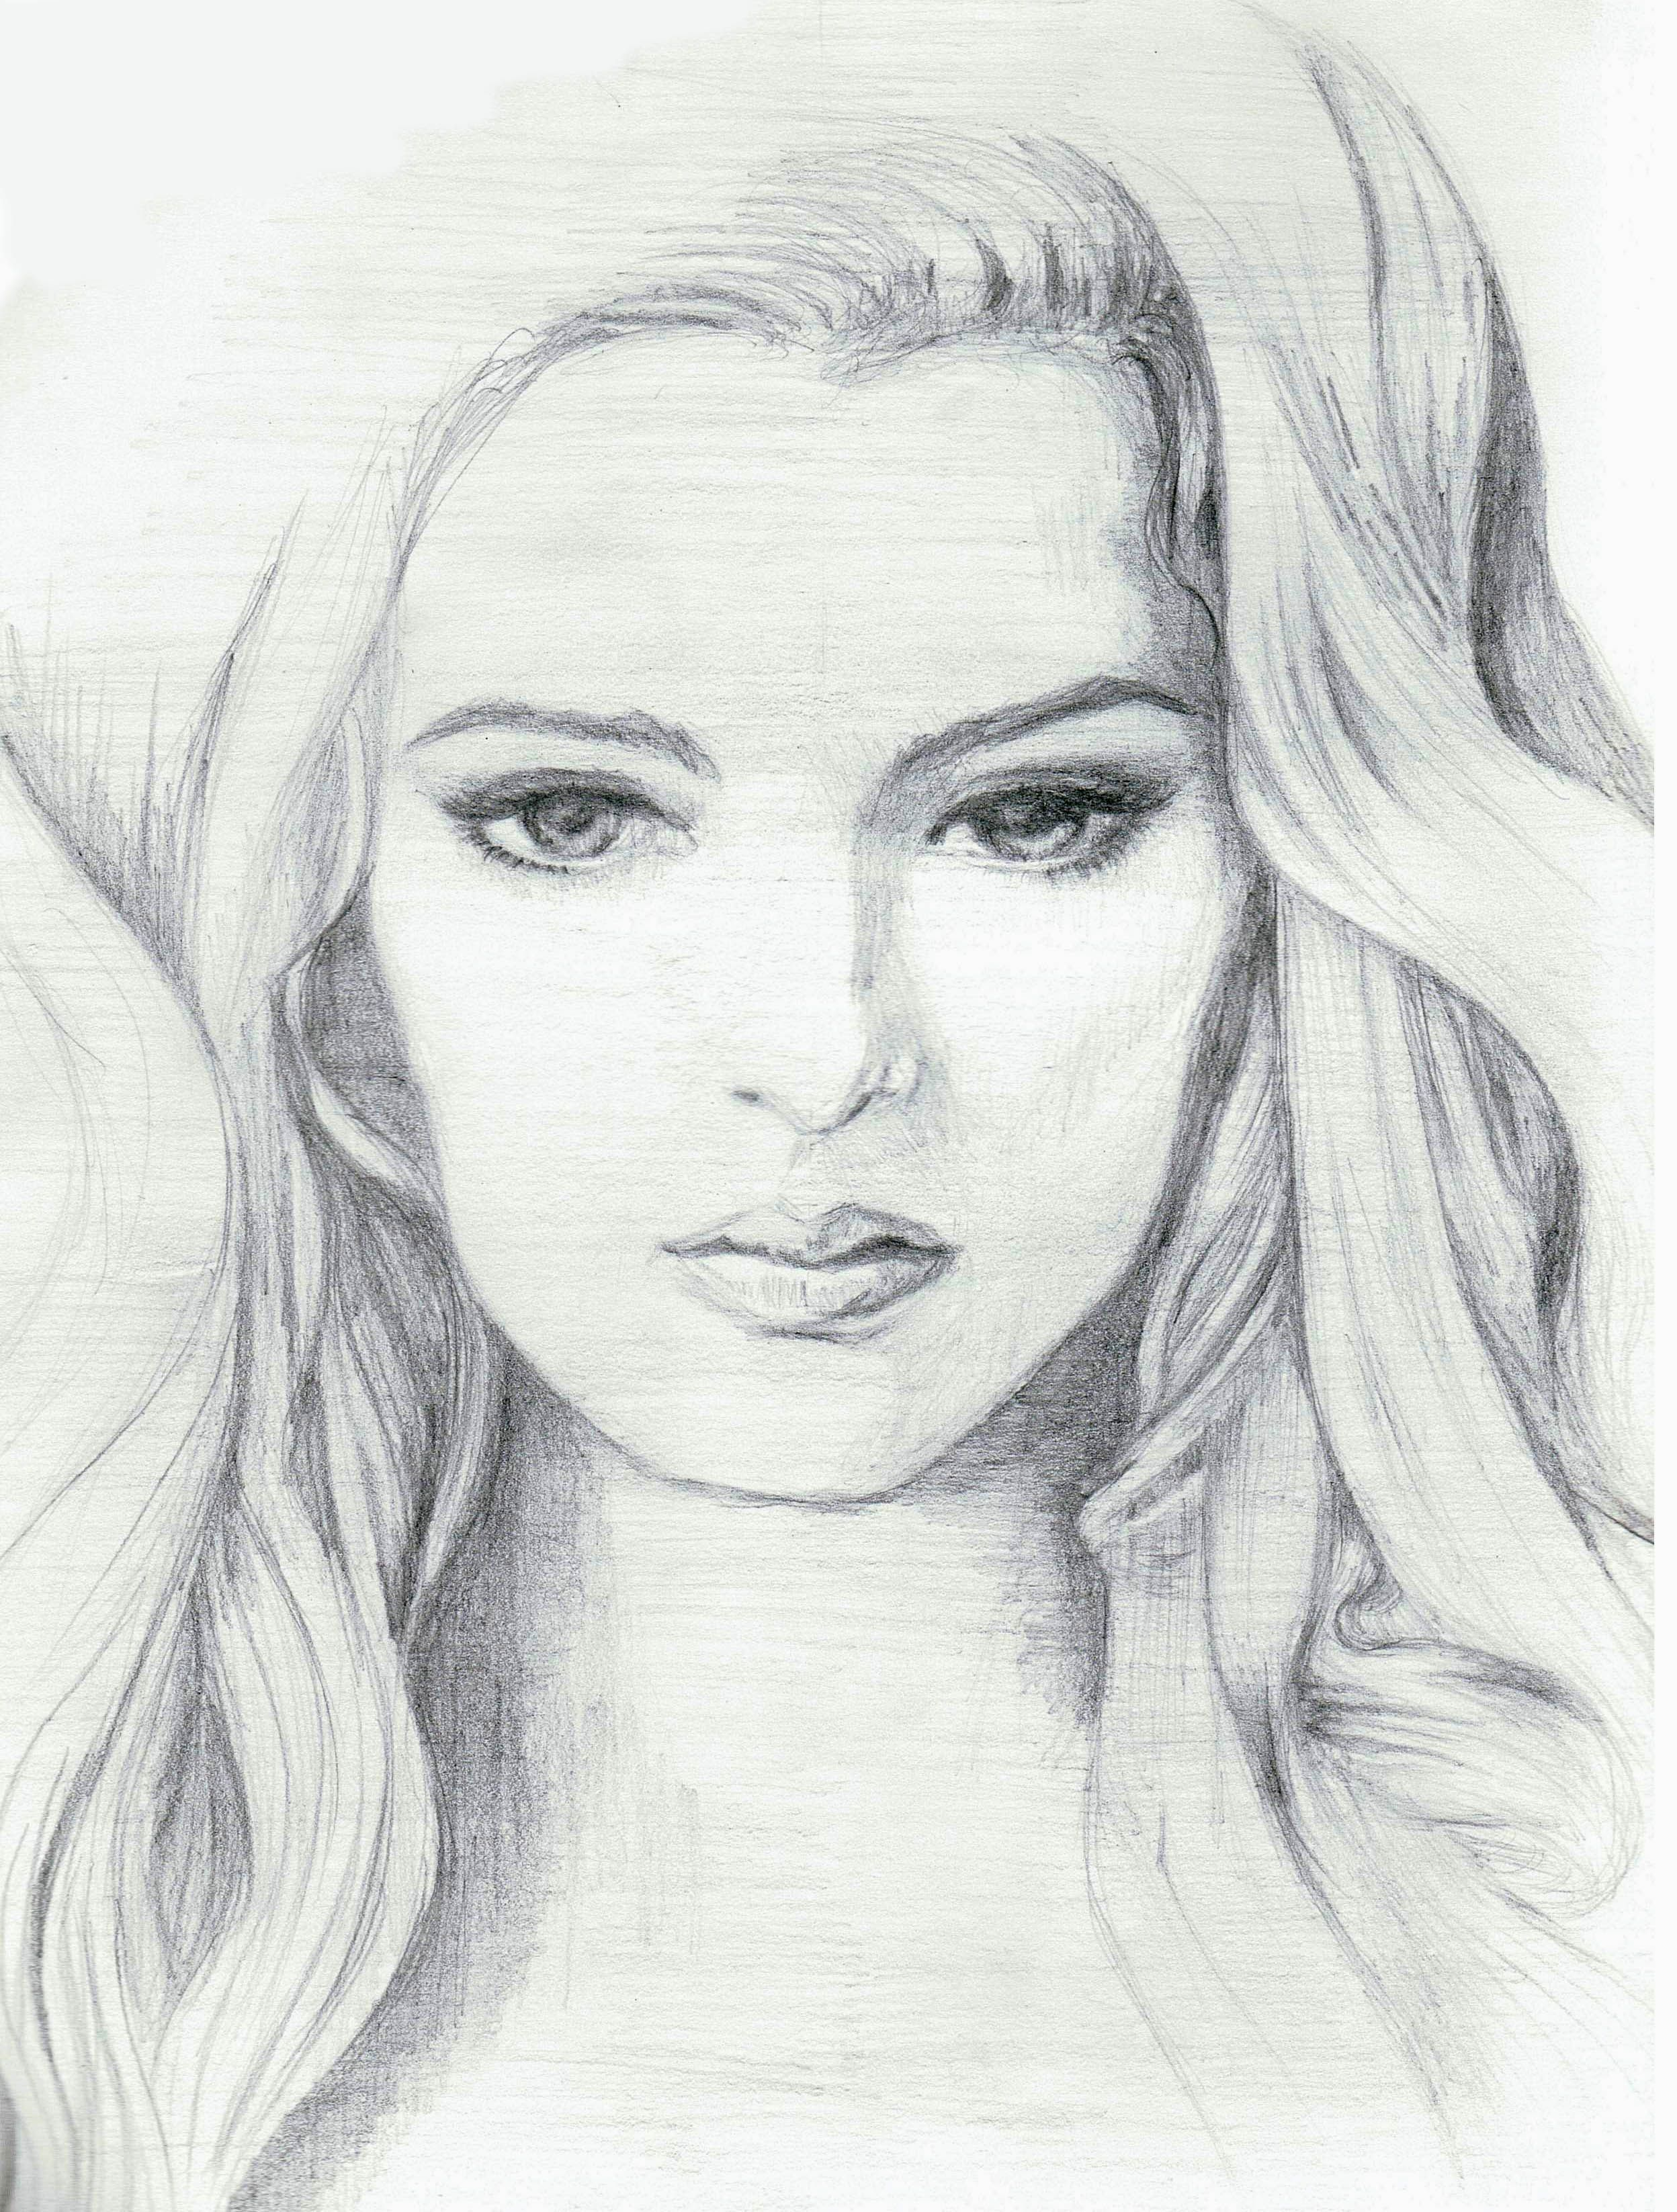 Pencil sketches of face sketches of women faces related keywords amp suggestions sketches